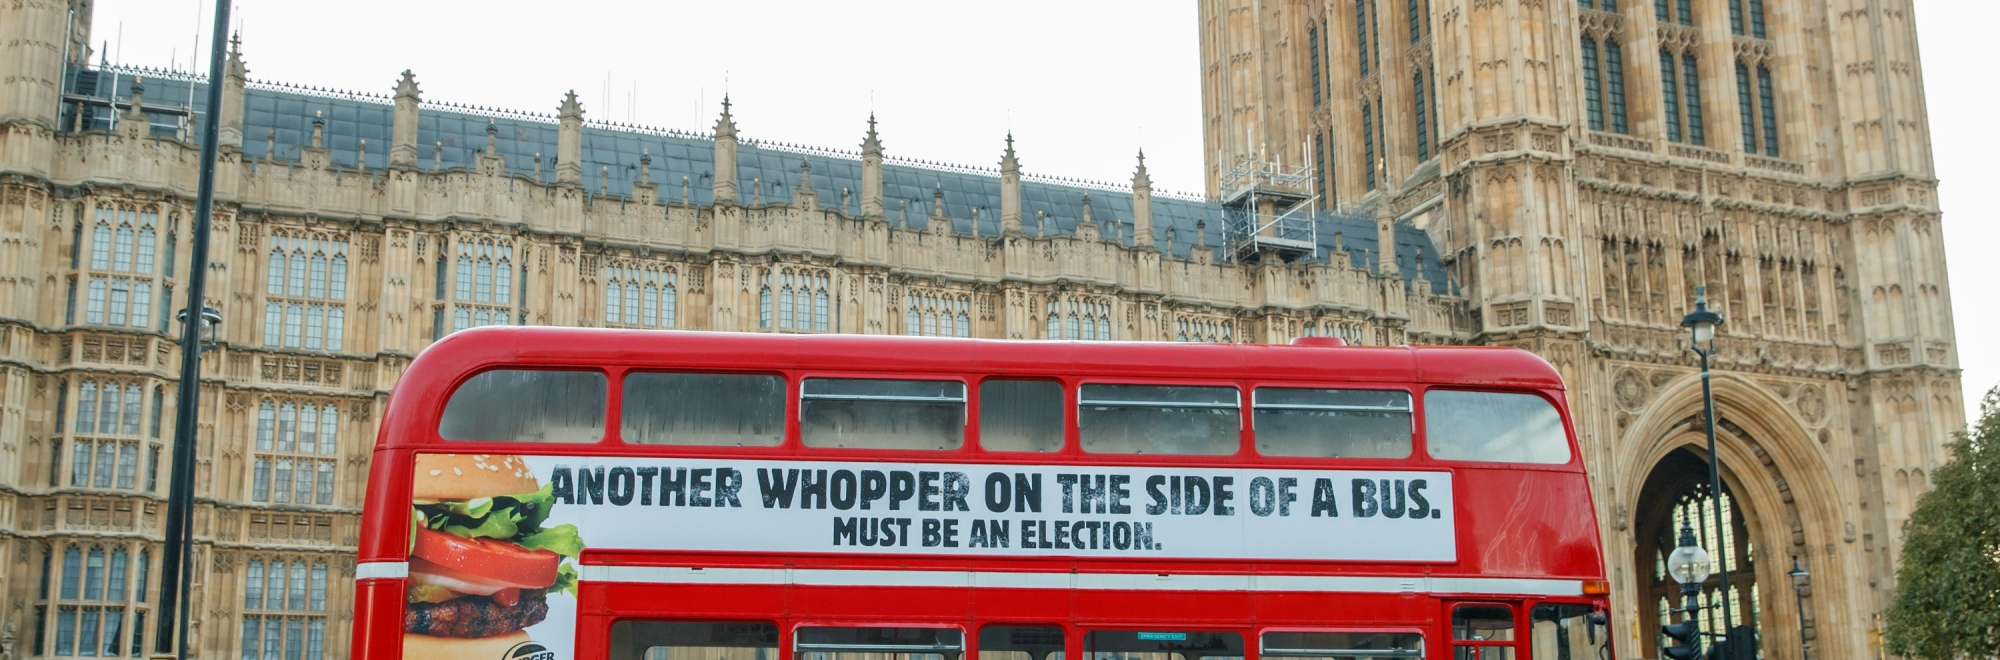 Burger King and BBH have proudly produced a Whopper on the side of a bus